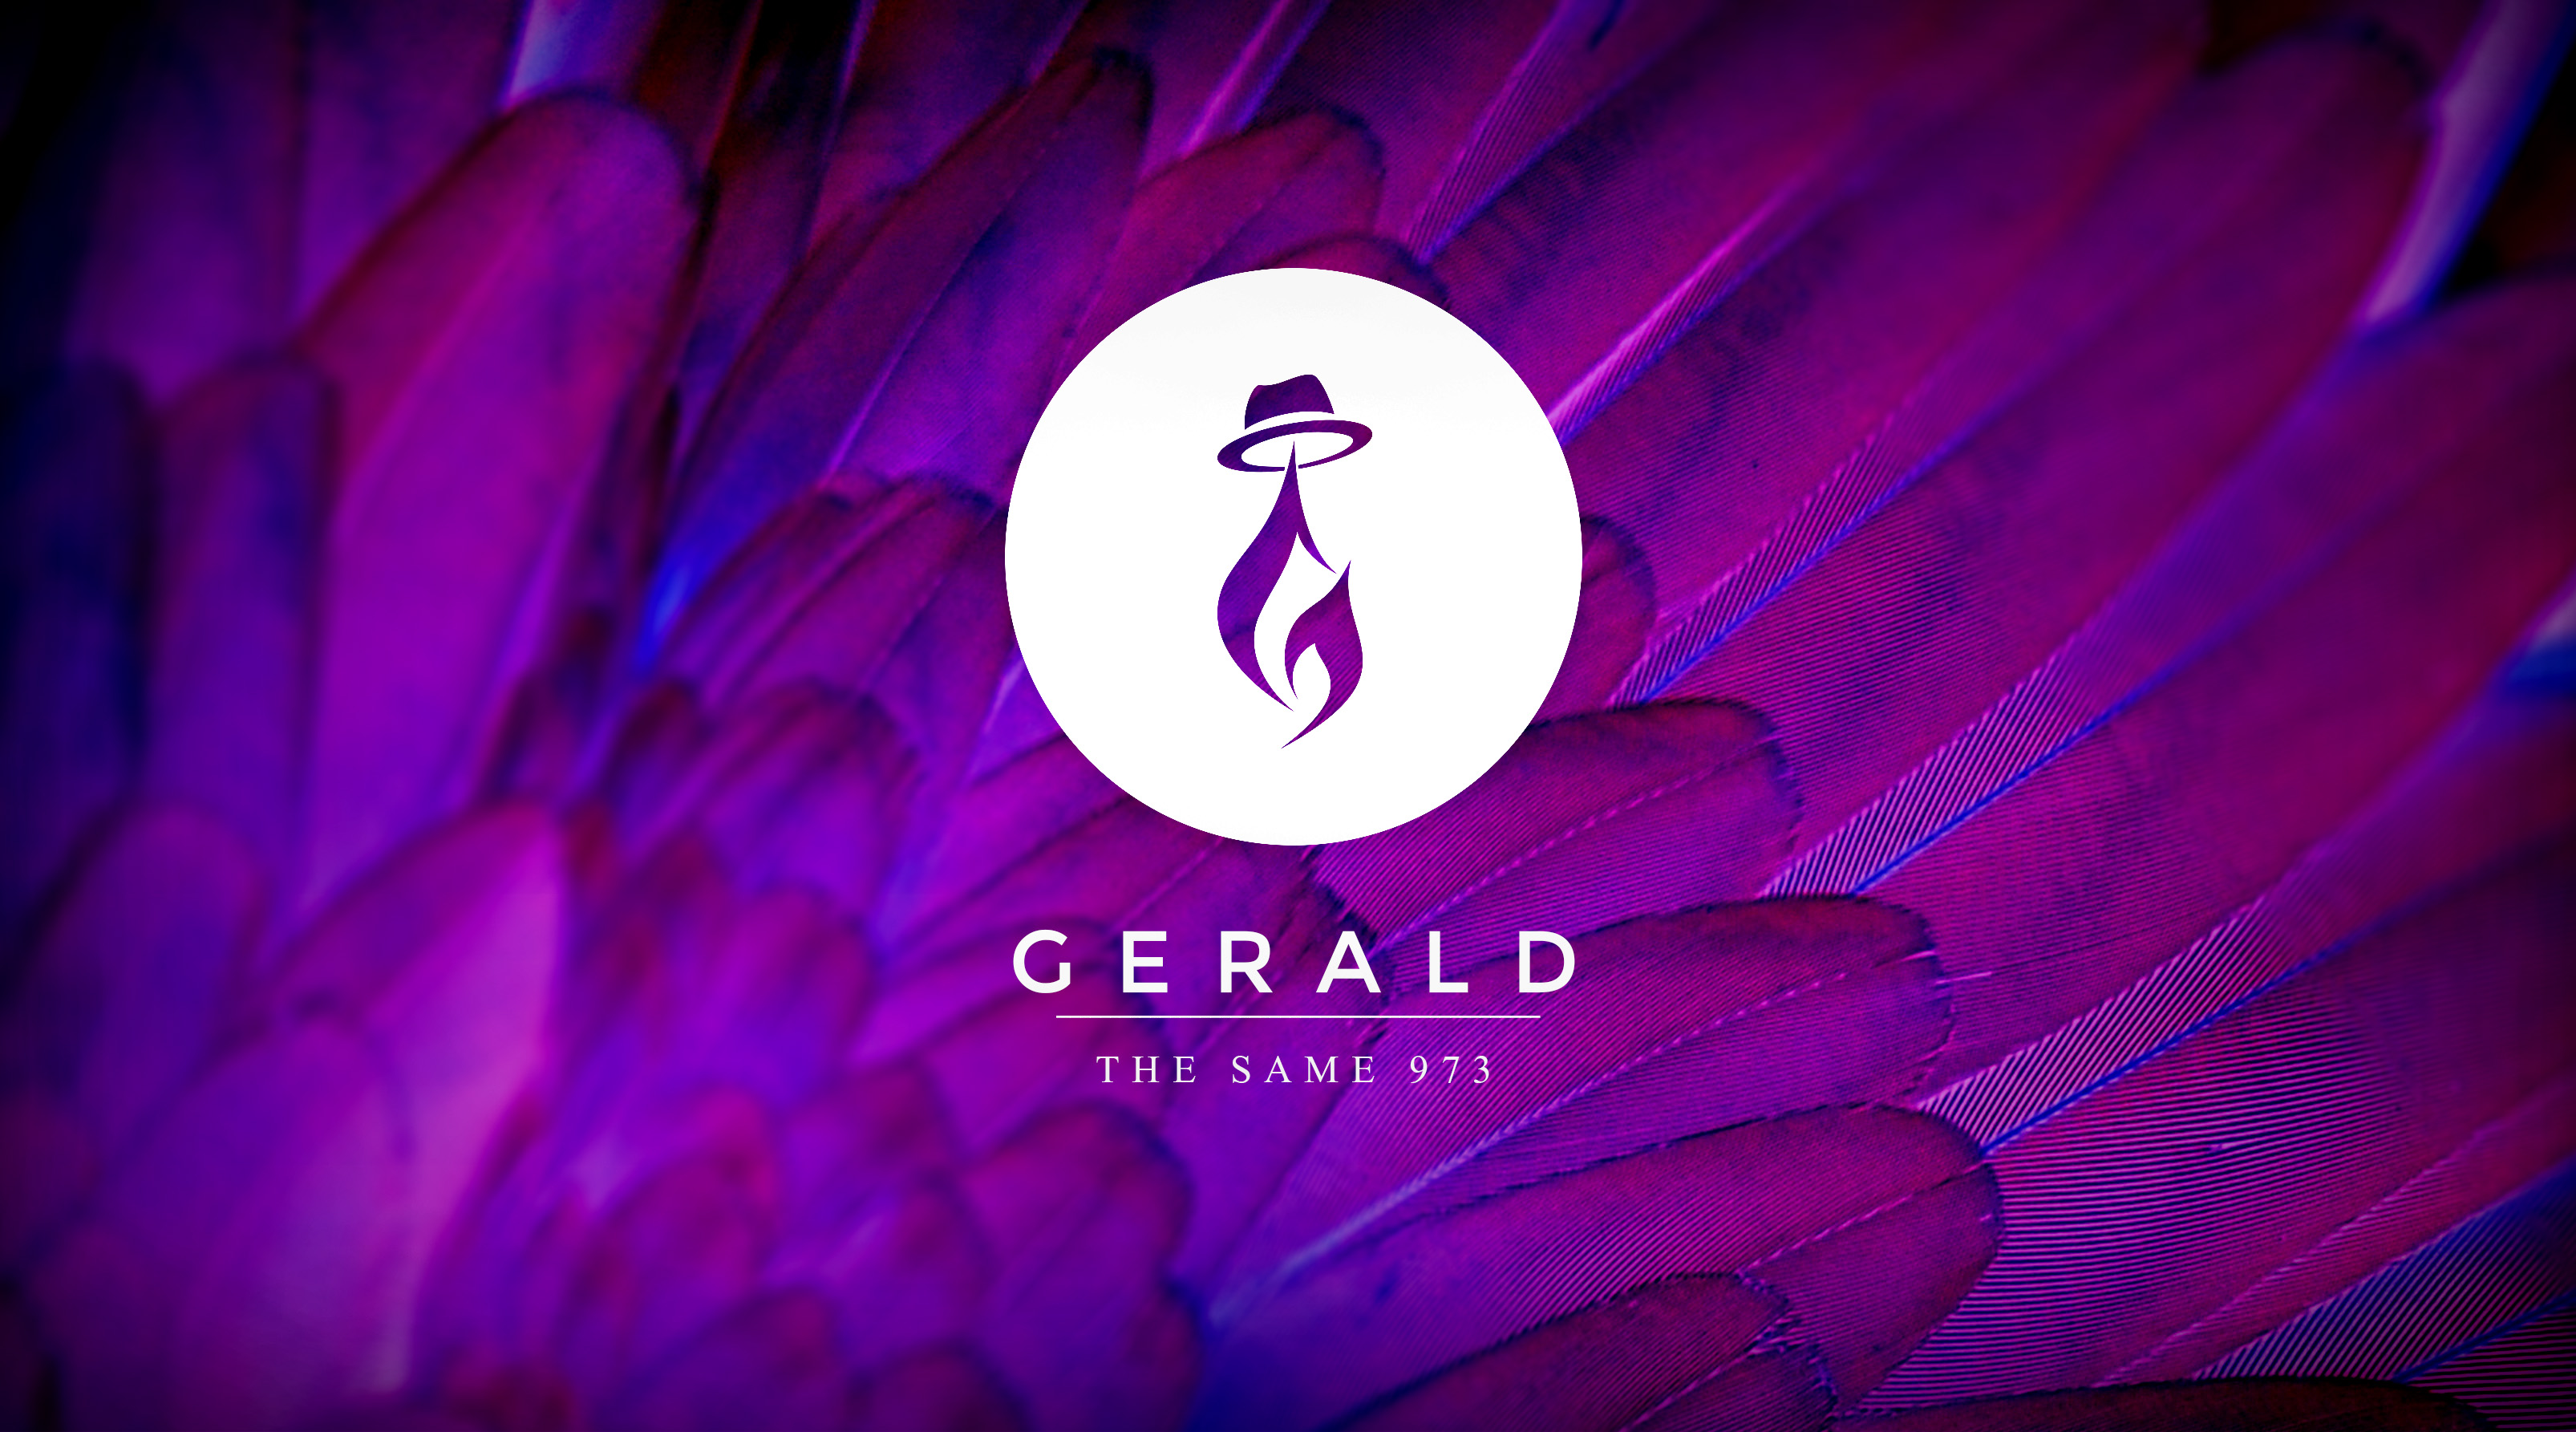 logo-rond-violet-plumes-thesame